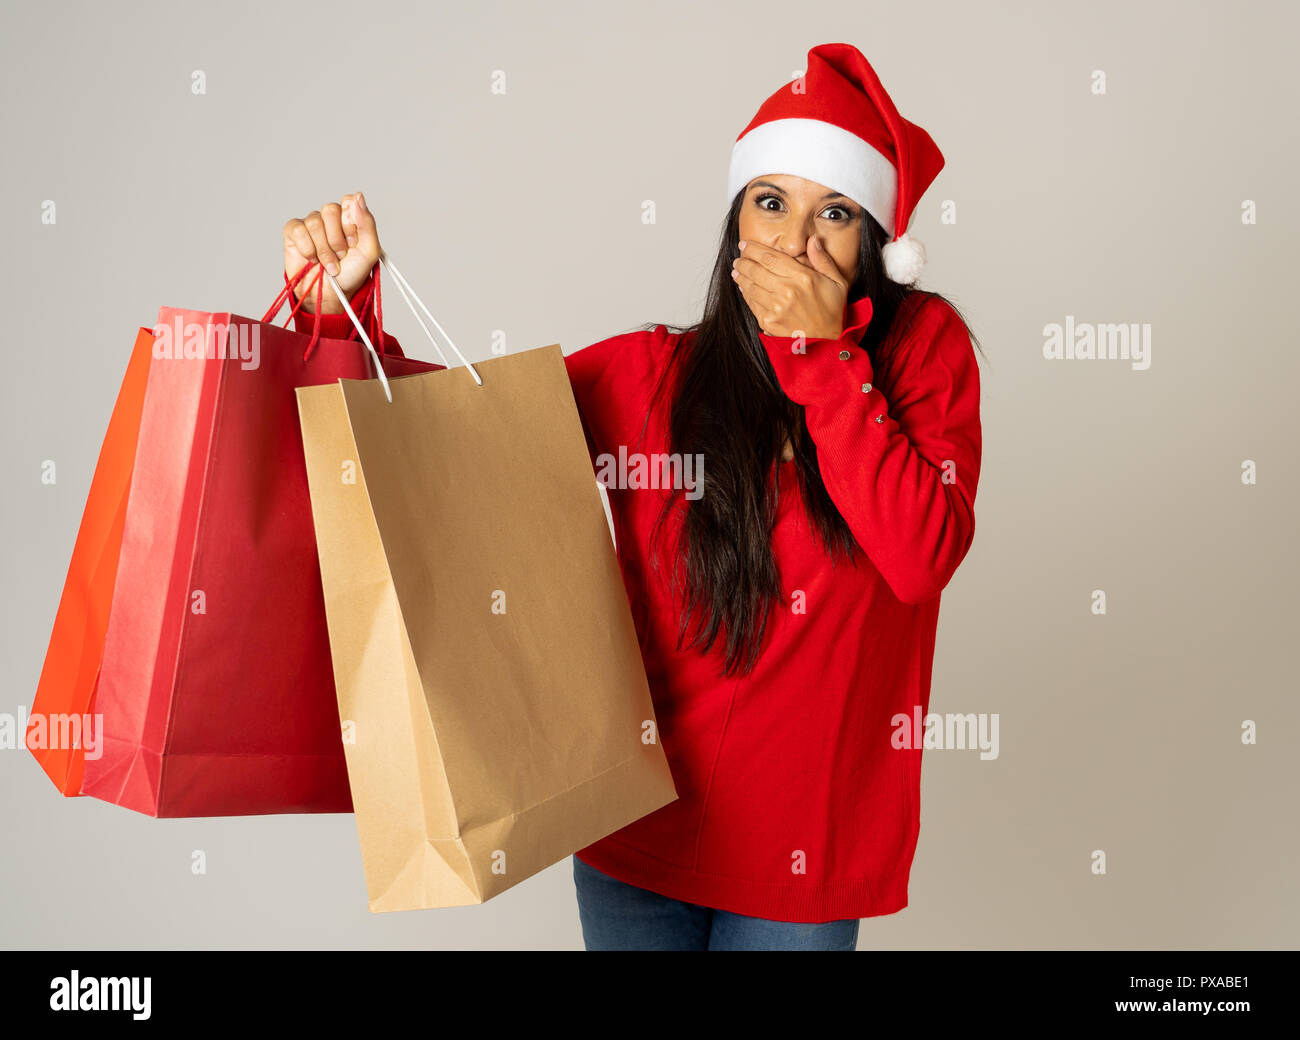 Young Woman Ready For Christmas With Paper Shopping Bags In Red And